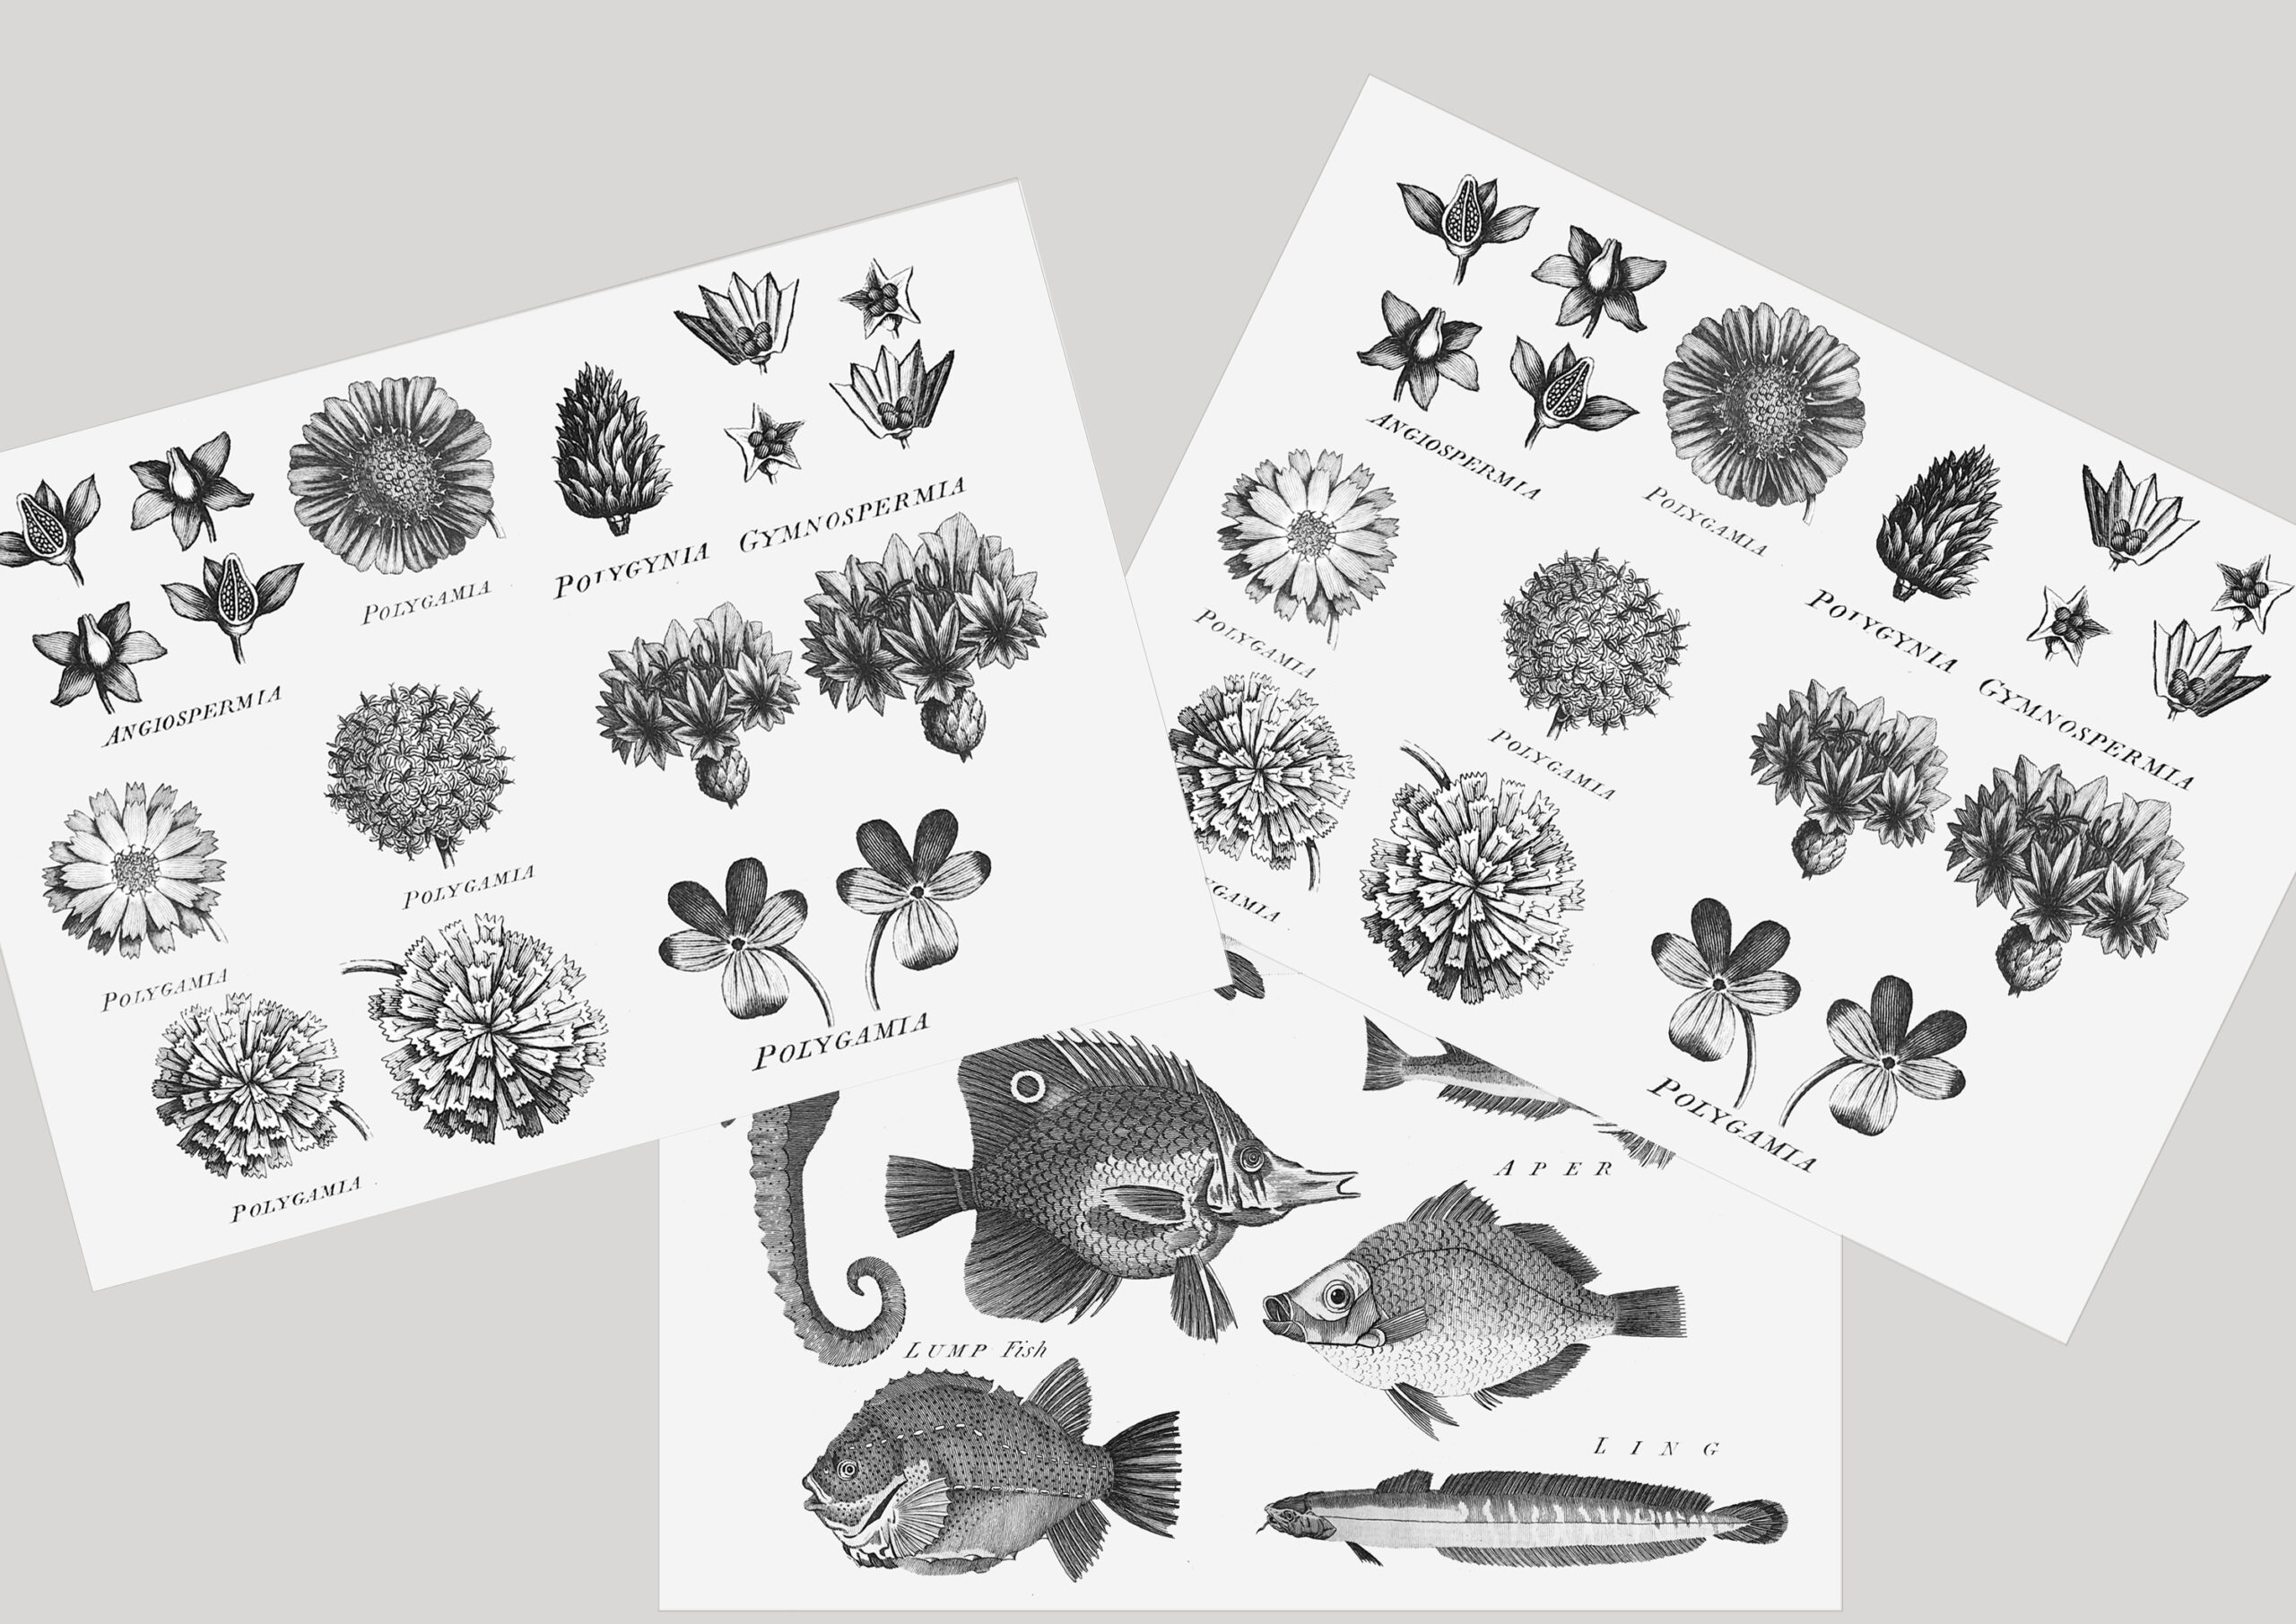 pages from 18th century encyclopaedia included in collage kits